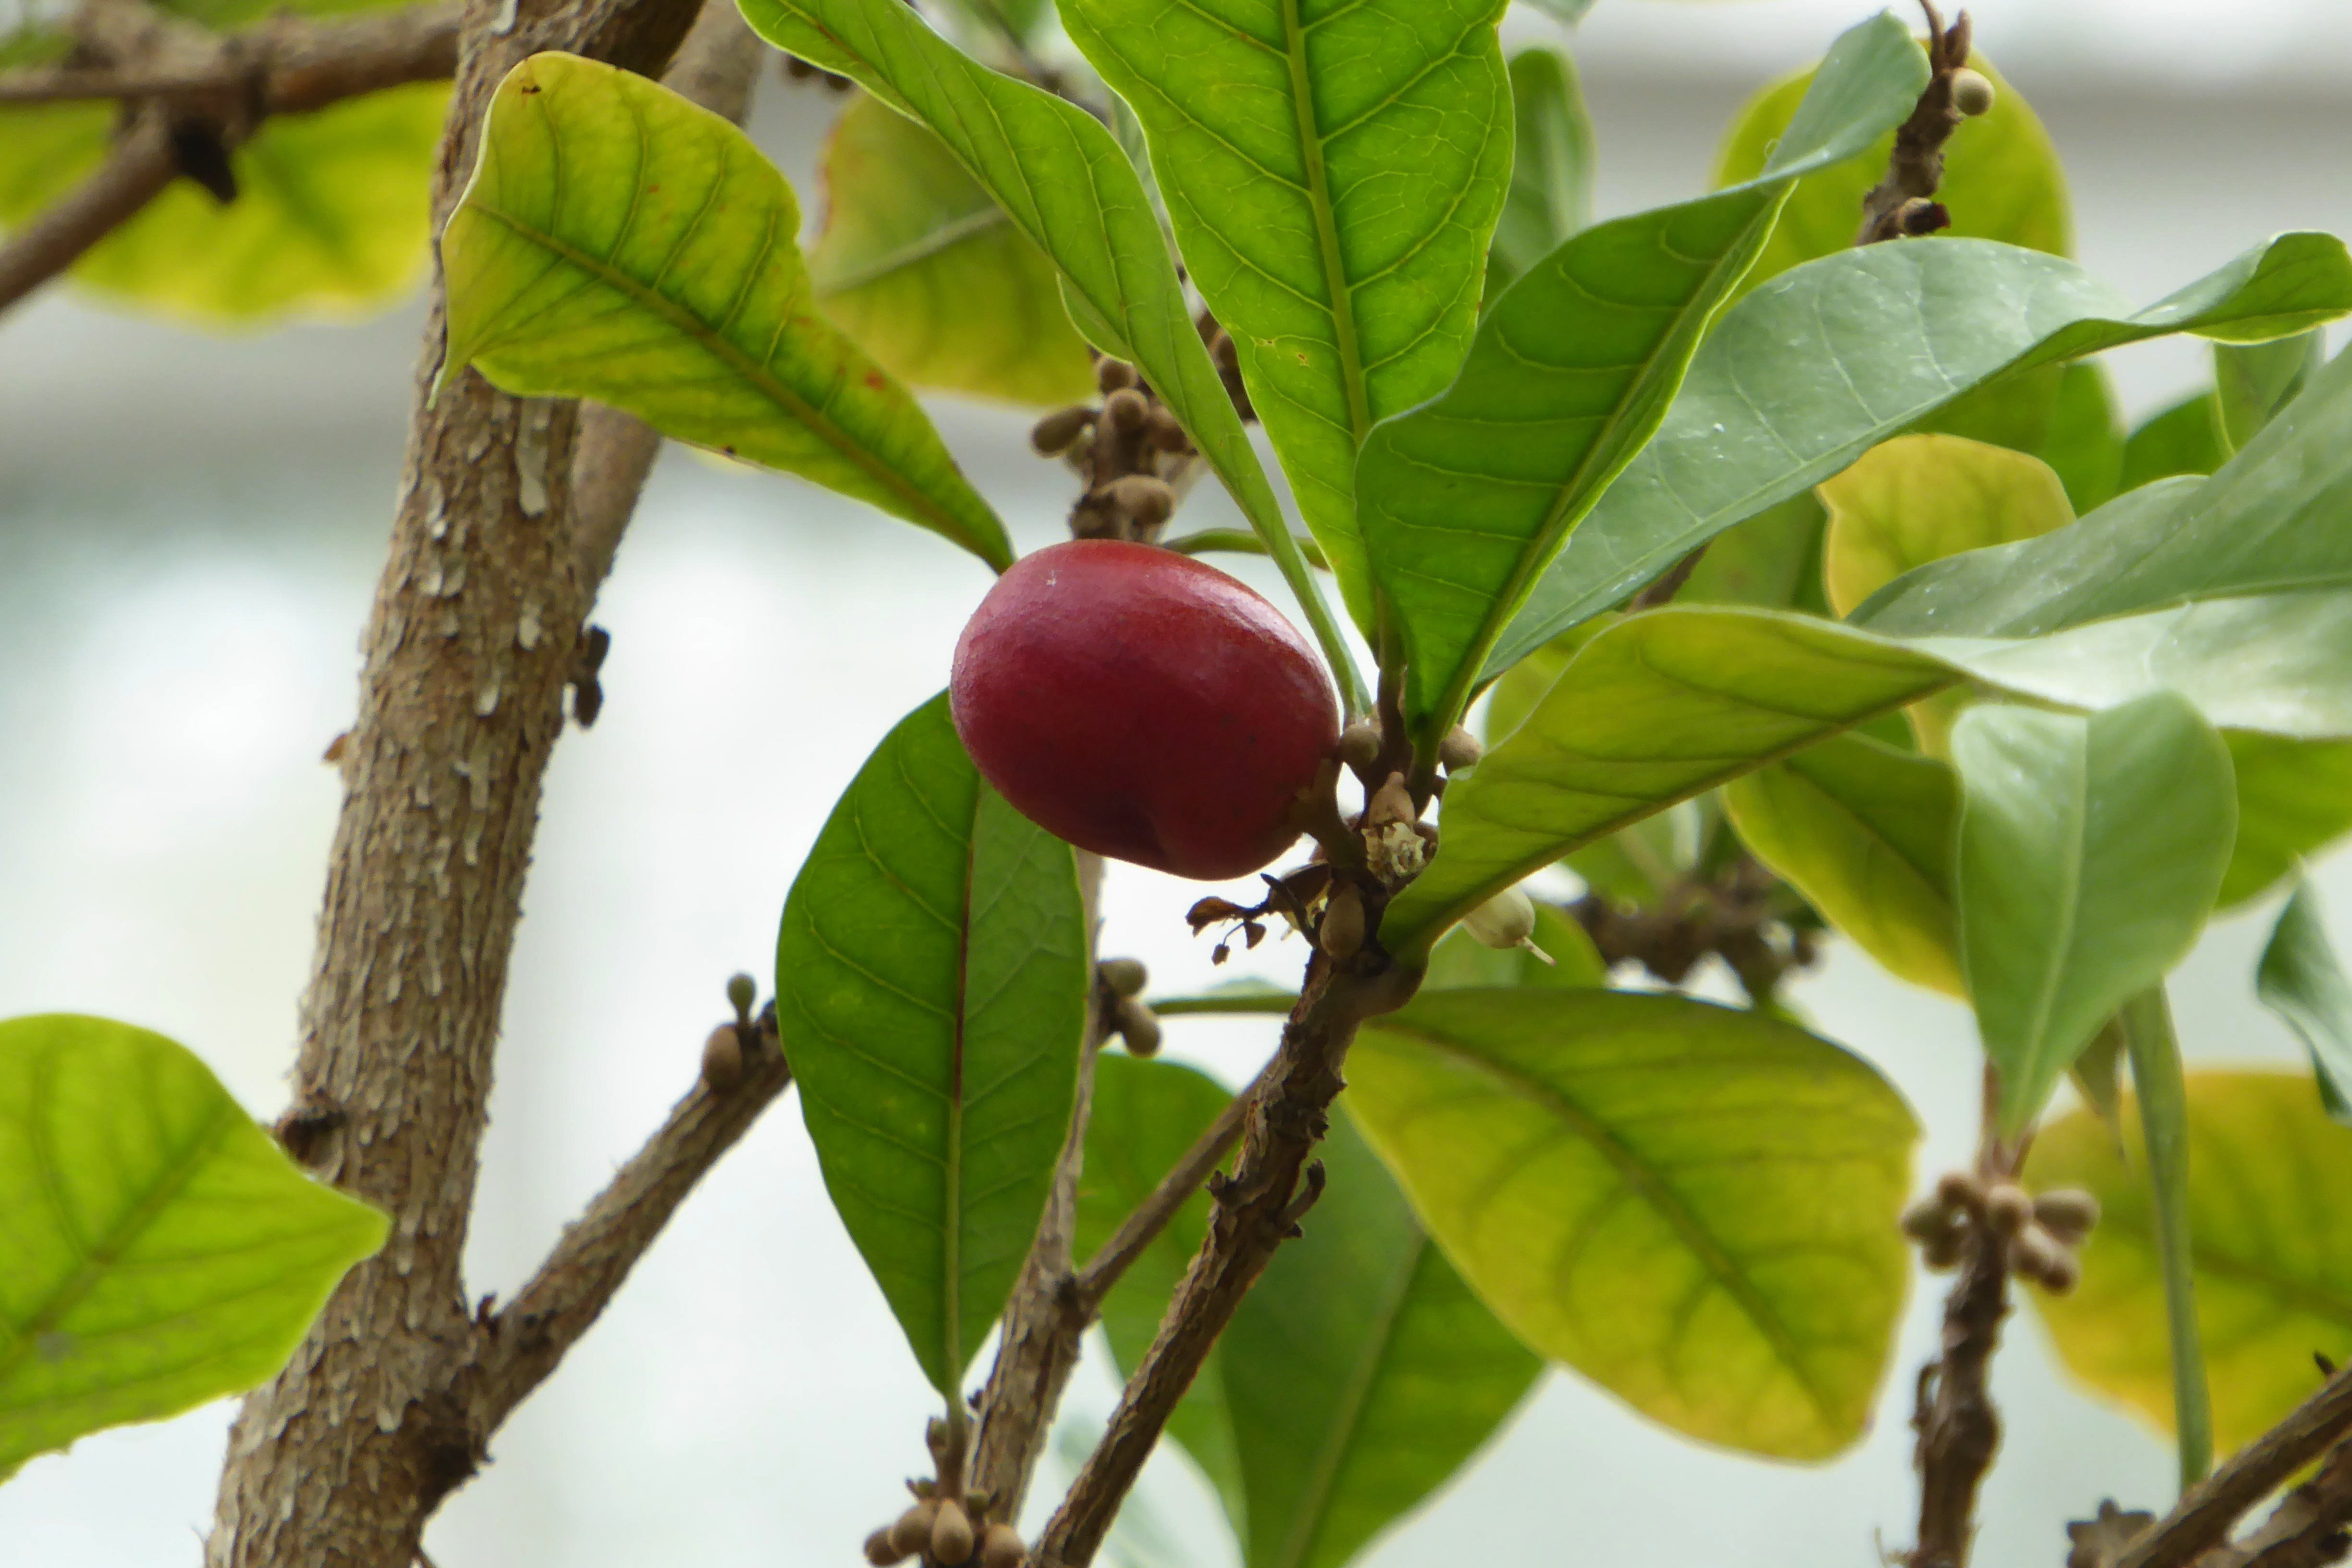 Pin On Plants Used For Medicine And Aids